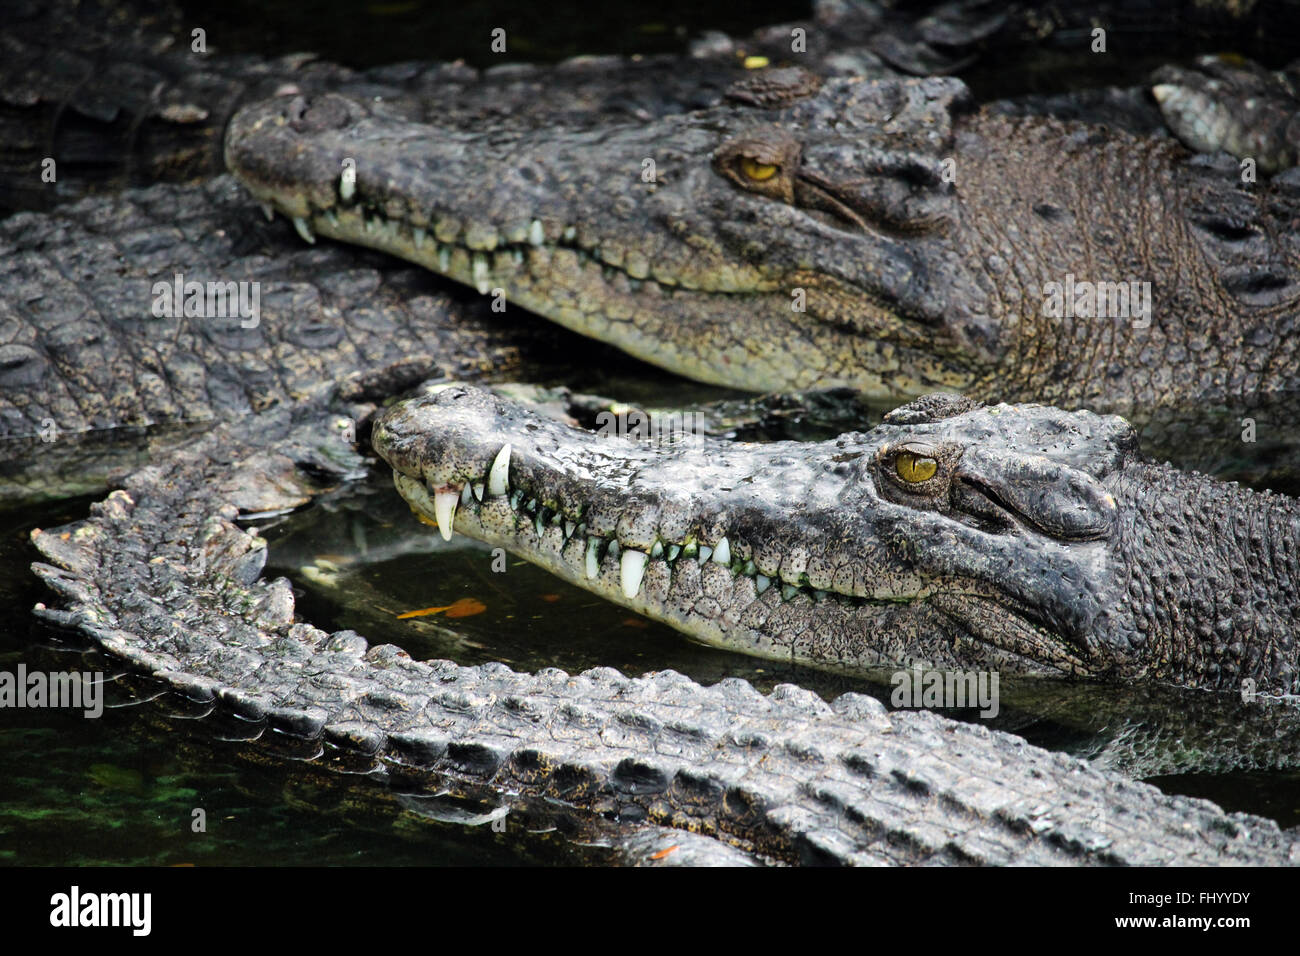 MIRI/MALAYSIA - 24 NOVEMBER 2015: Agglomeration of crocodiles in the water in Borneo next to the border between - Stock Image